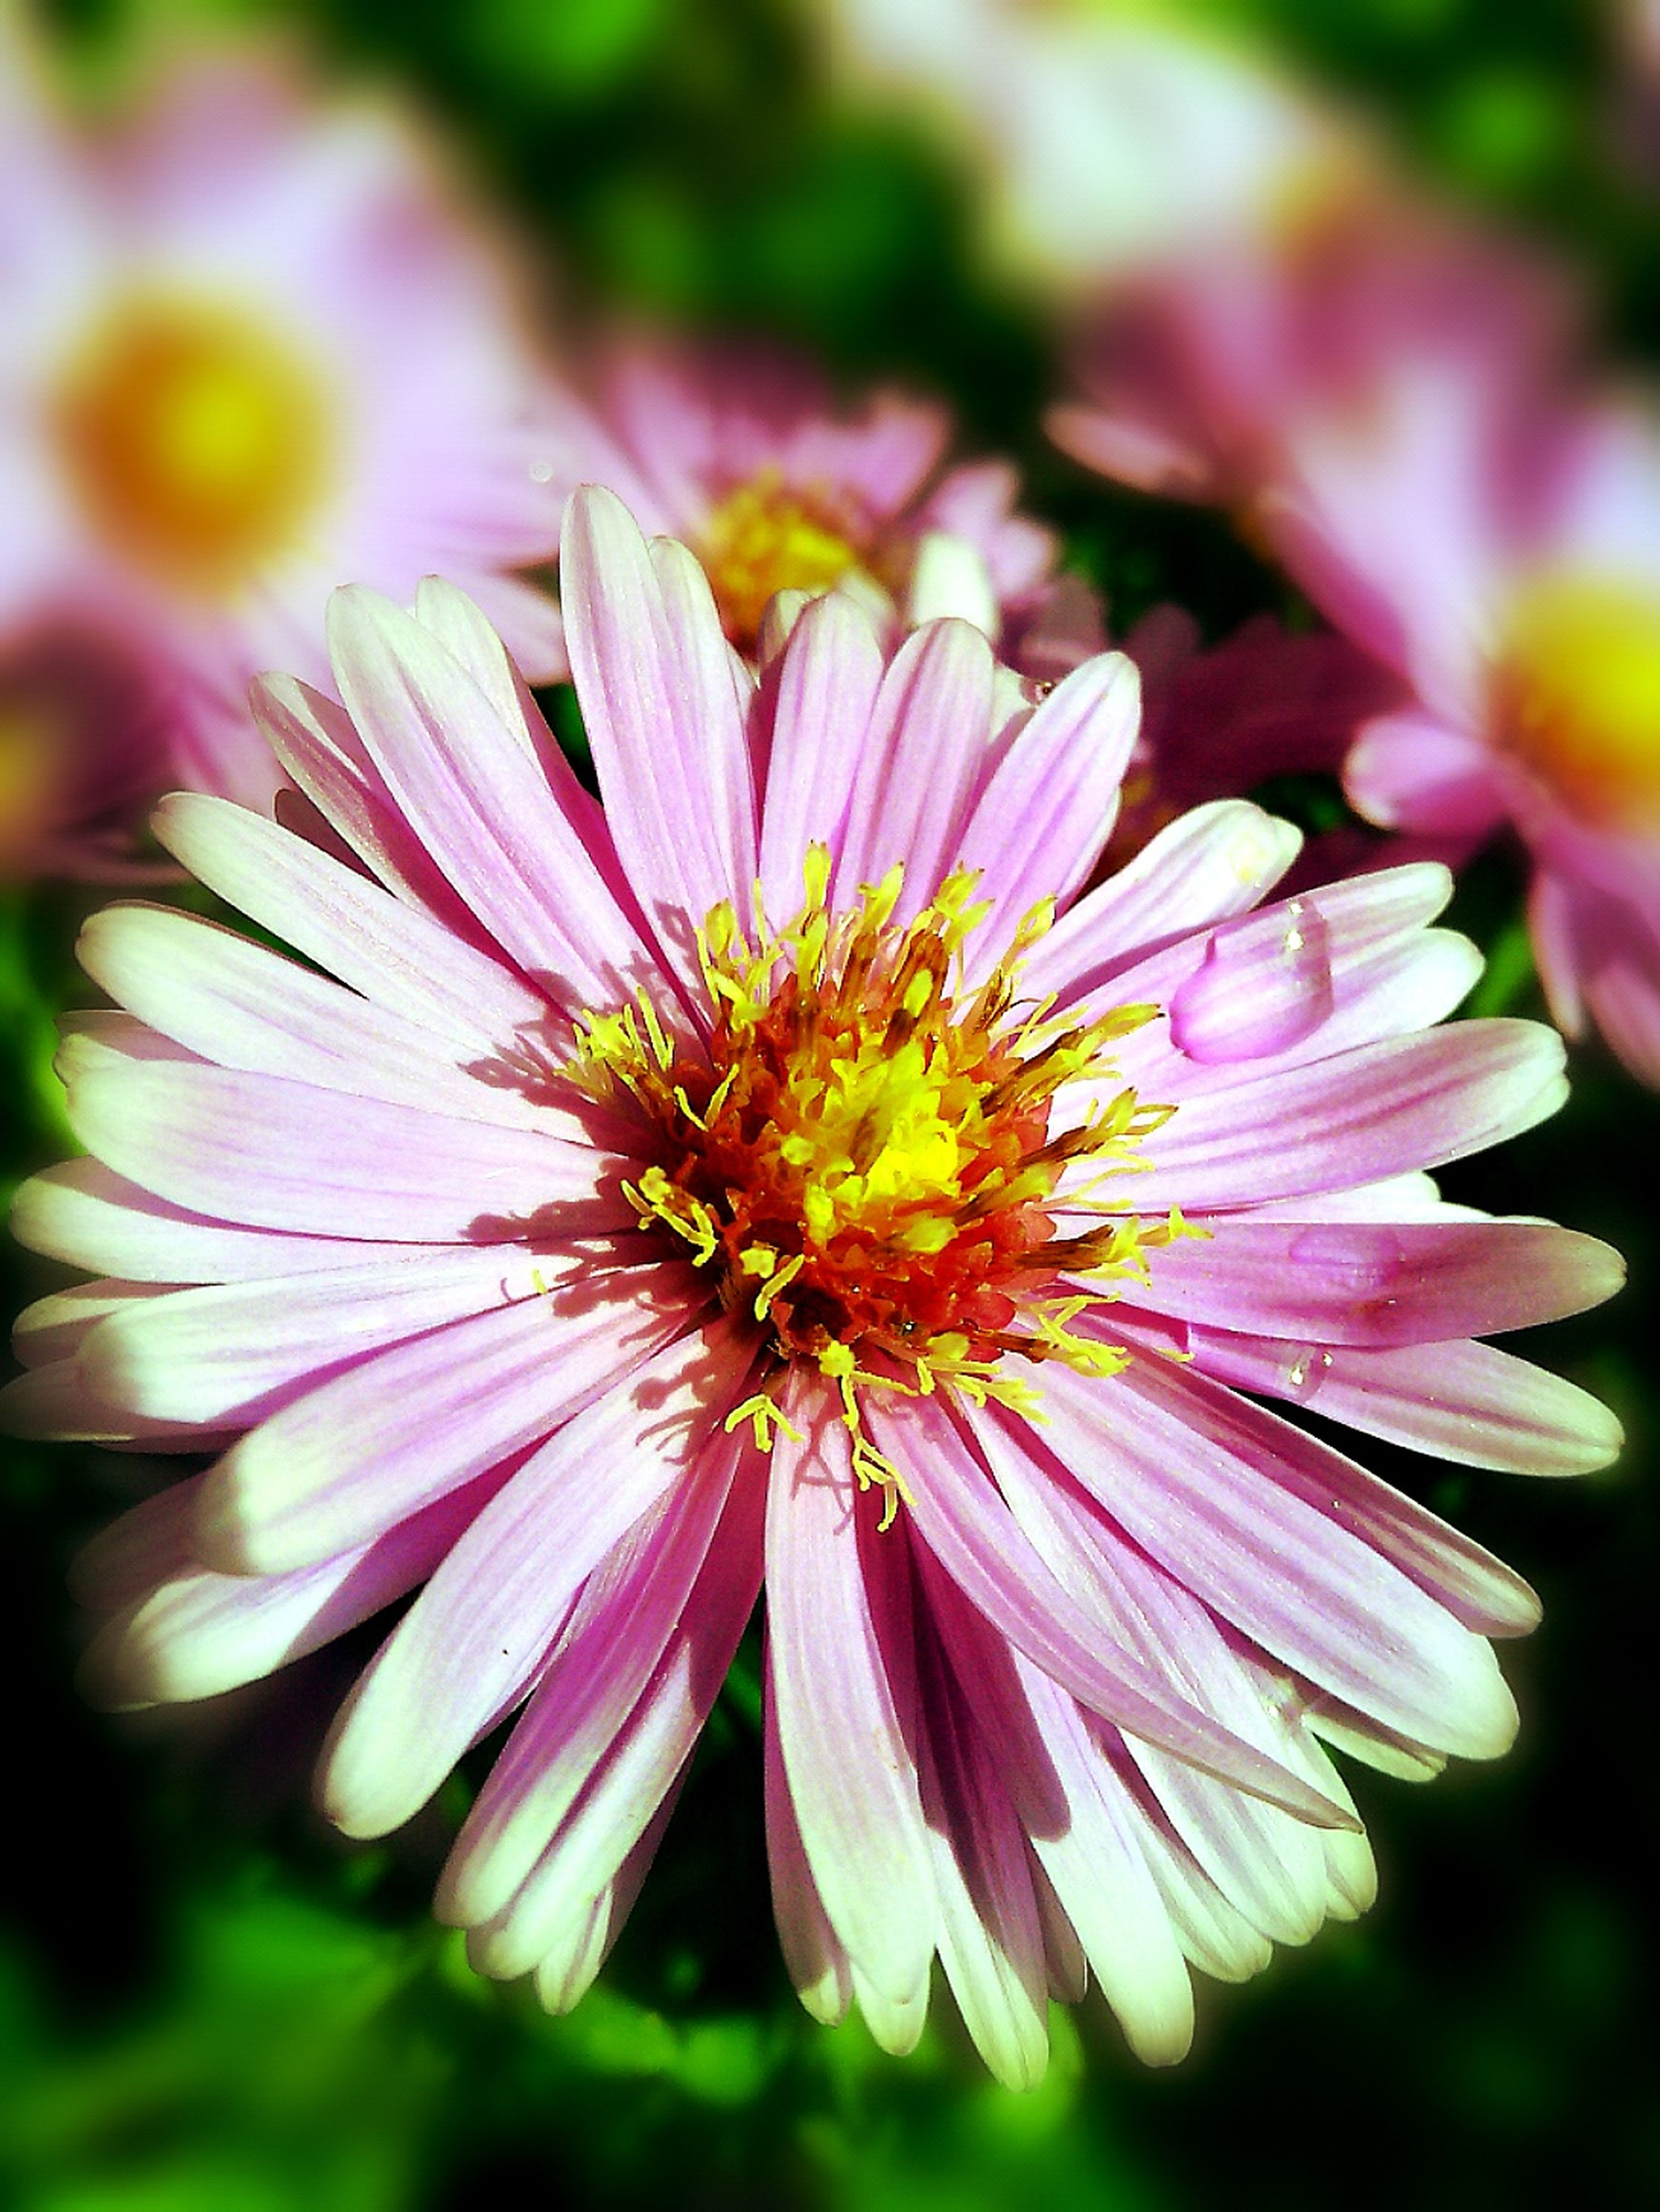 flower, freshness, fragility, petal, flower head, beauty in nature, growth, close-up, nature, season, springtime, daisy, selective focus, single flower, in bloom, pink color, macro, plant, stamen, blossom, pollen, vibrant color, blooming, purple, focus on foreground, pink, bloom, day, botany, soft focus, softness